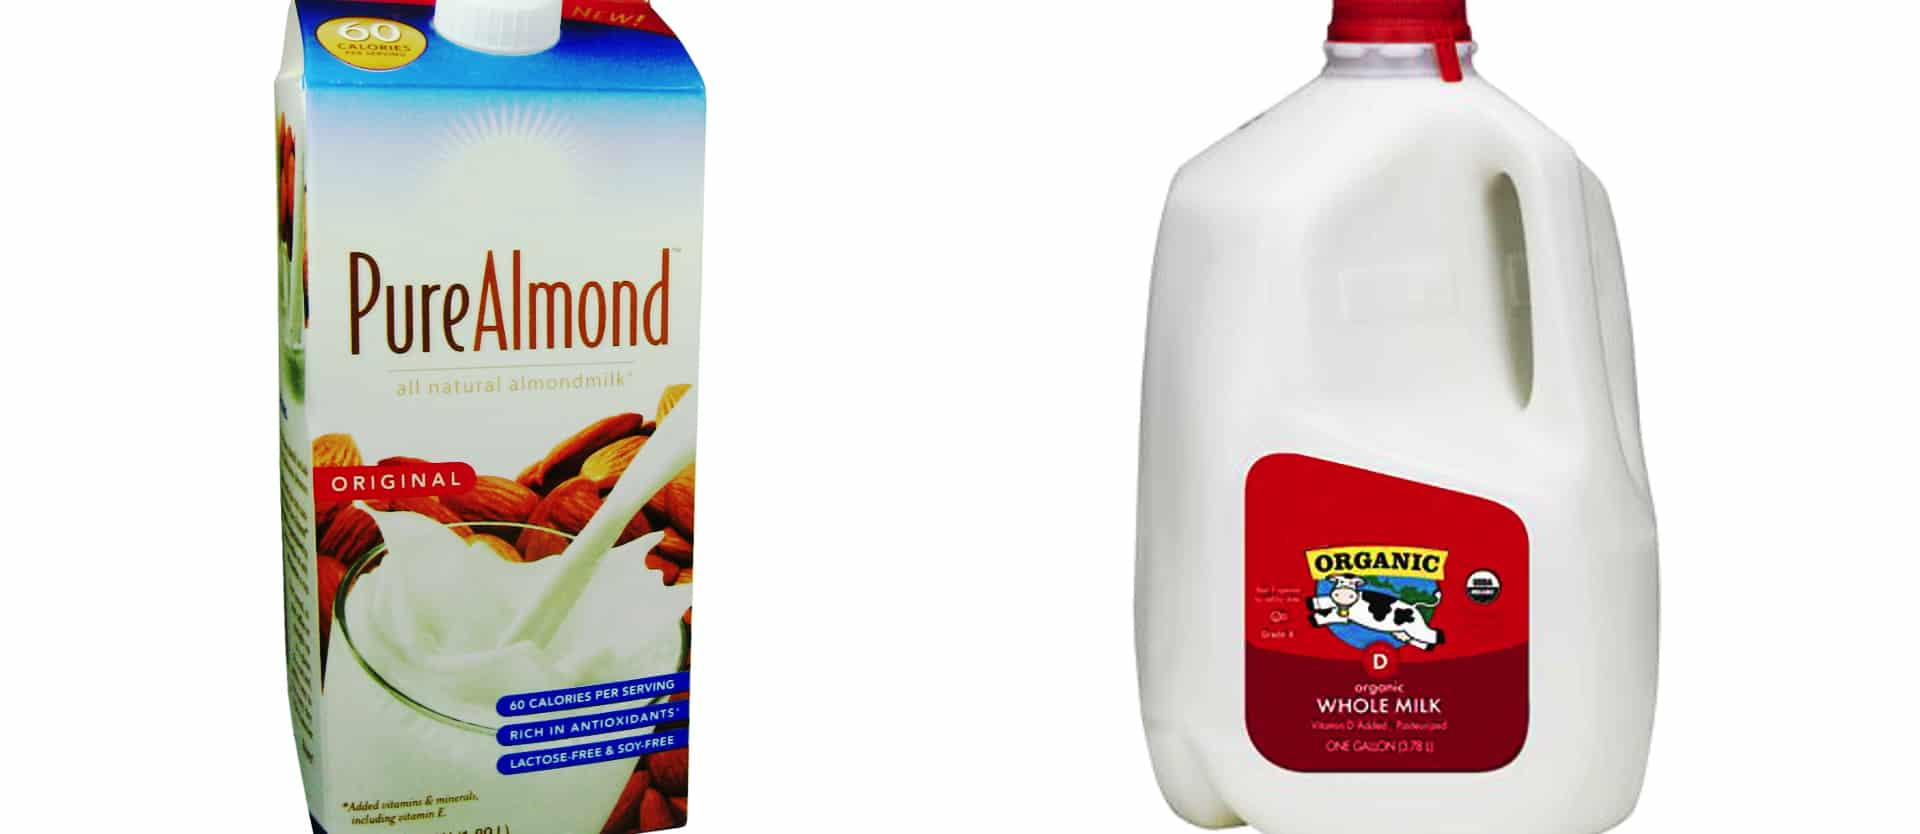 Prostate Cancer and Organic Milk vs. Almond Milk